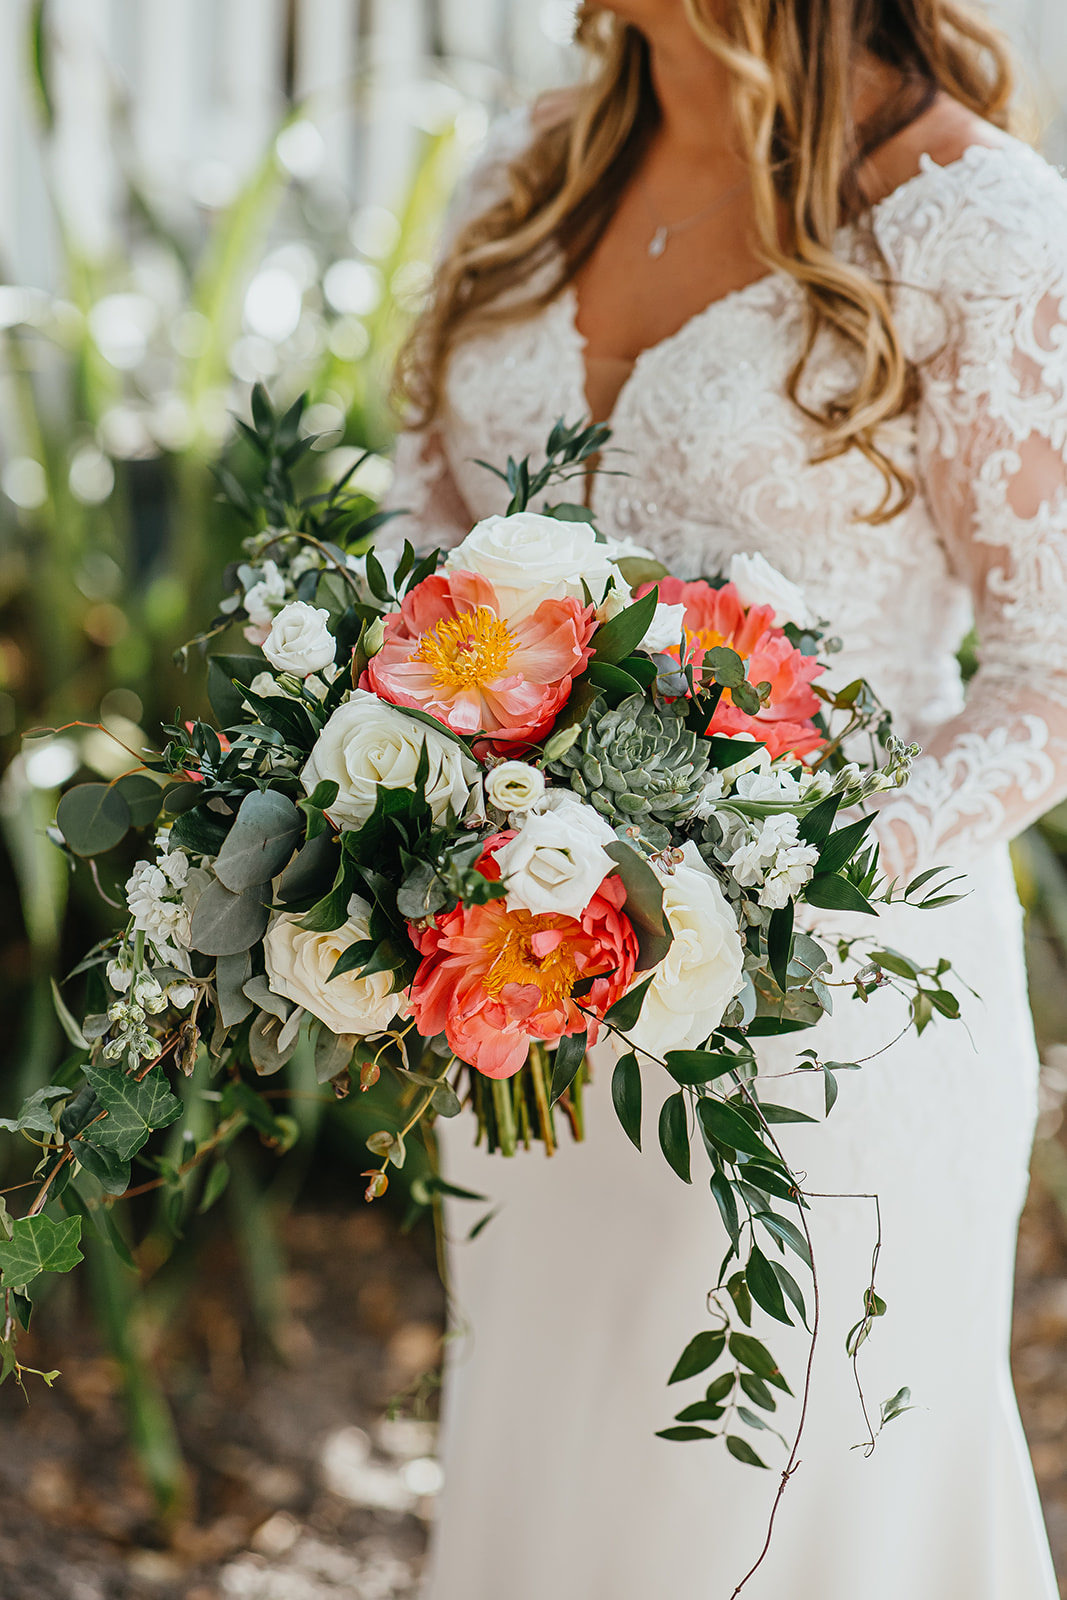 Organic Natural Loose Wedding Bridal Bouquet With Coral Pink Peonies And White Roses With Succulents And Eucalyptus Greenery By Tampa Florida Monarch Events And Designs Marry Me Tampa Bay Local